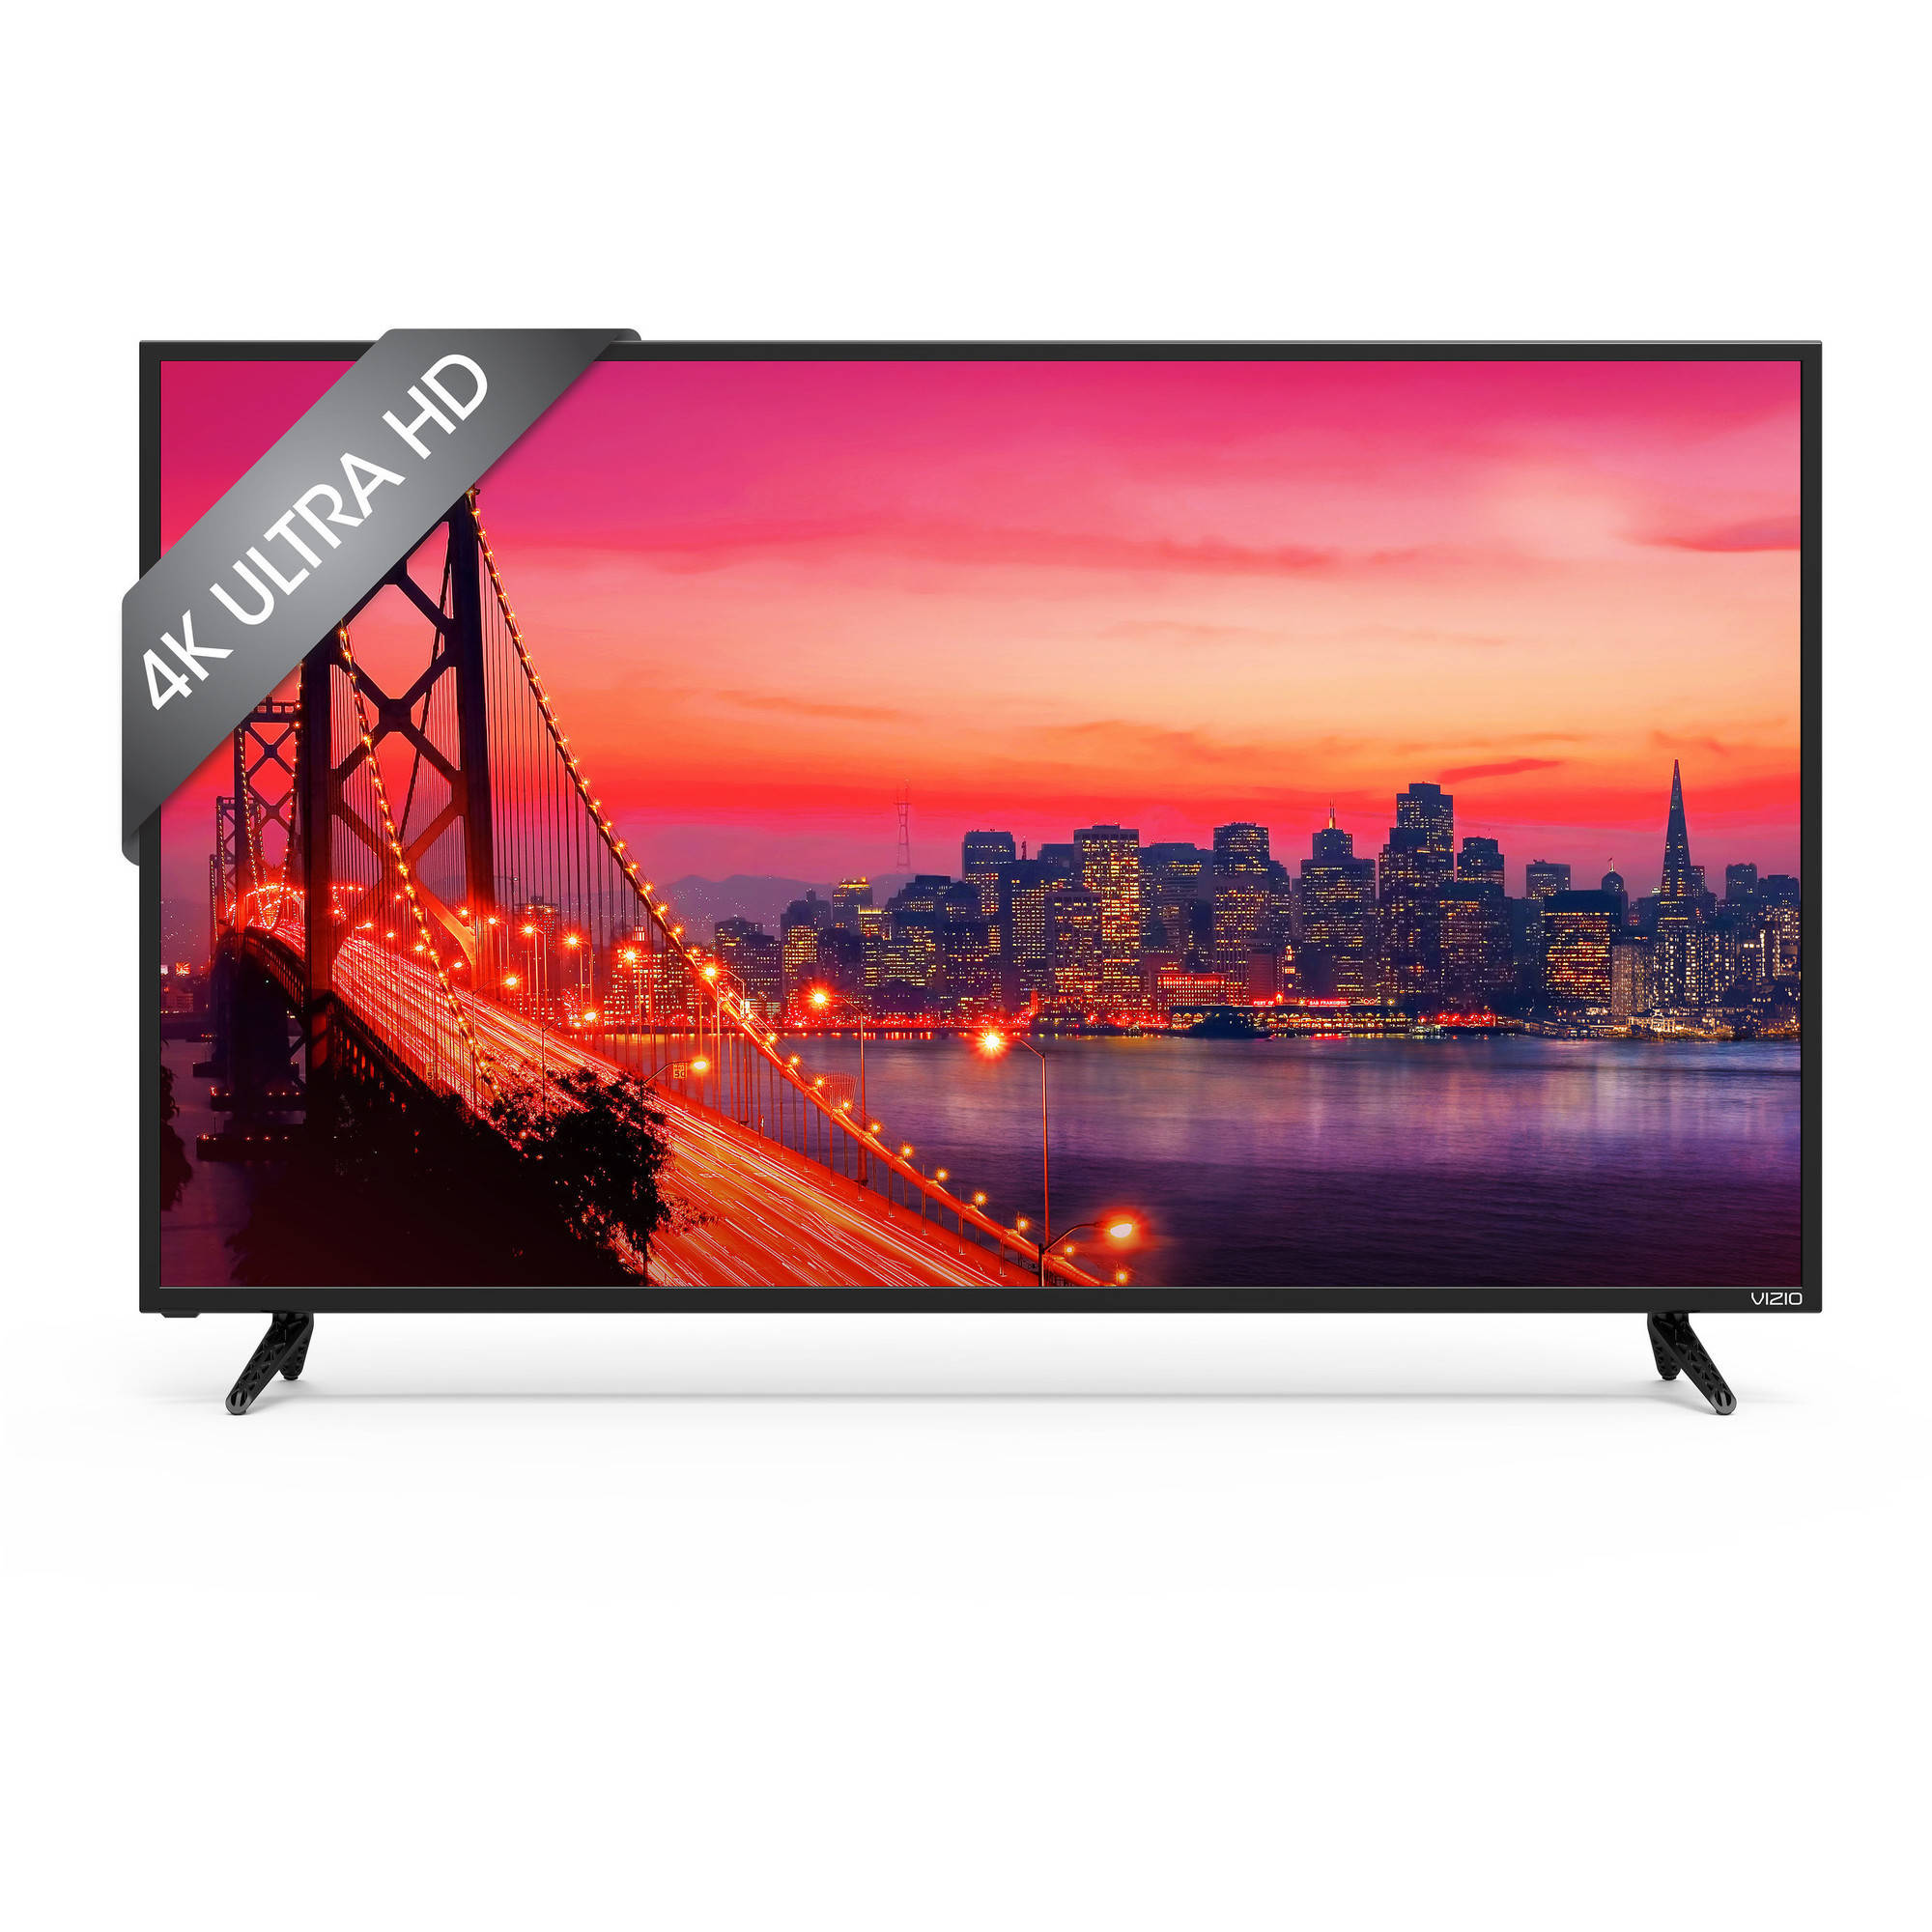 VIZIO SmartCast E-series 50 Class (49.51 diag.) Ultra HD??Home Theater Display w/ Chromecast built-in